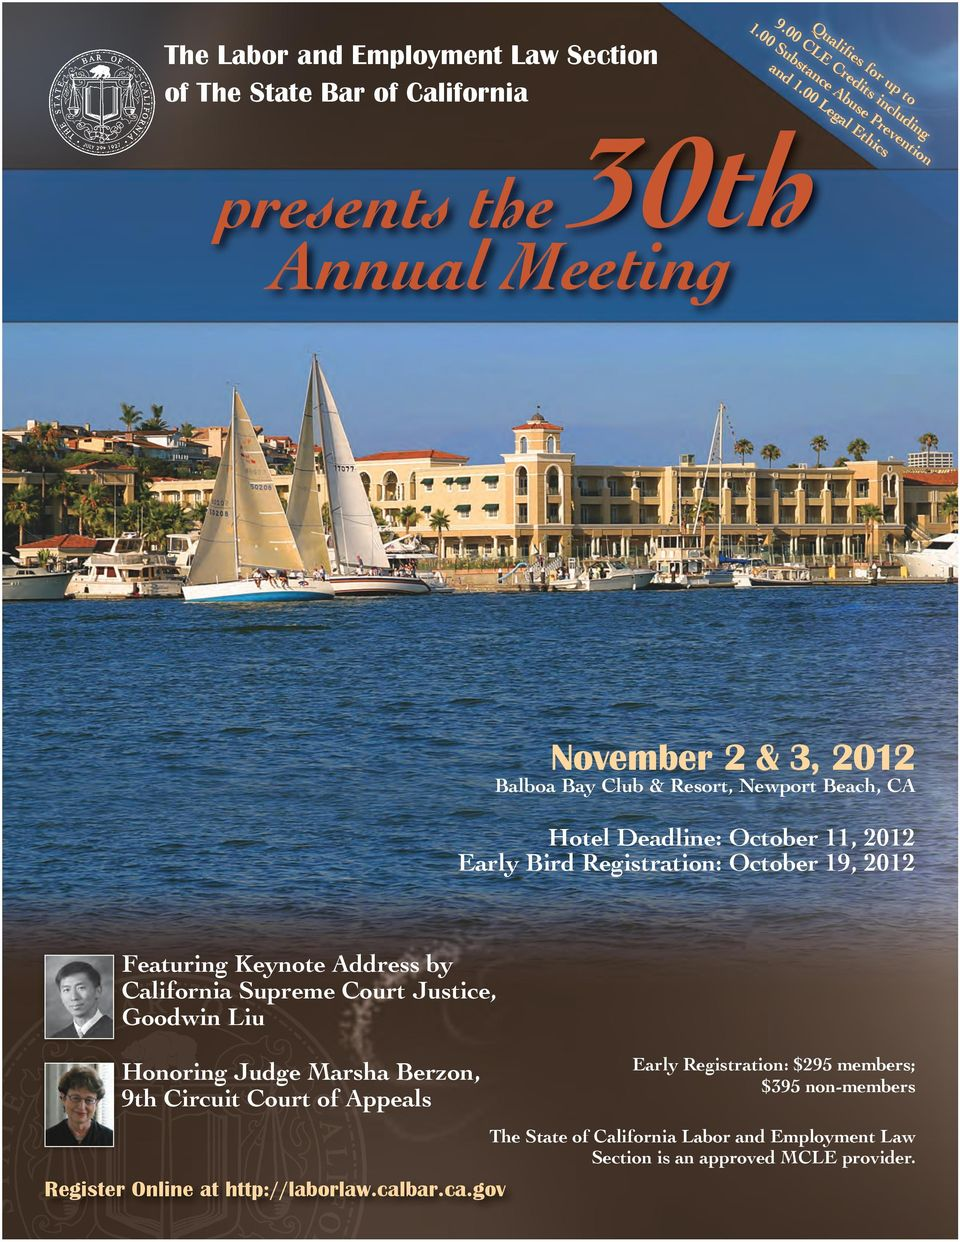 00 Legal Ethics November 2 & 3, 2012 Balboa Bay Club & Resort, Newport Beach, CA Hotel Deadline: October 11, 2012 Early Bird Registration: October 19,